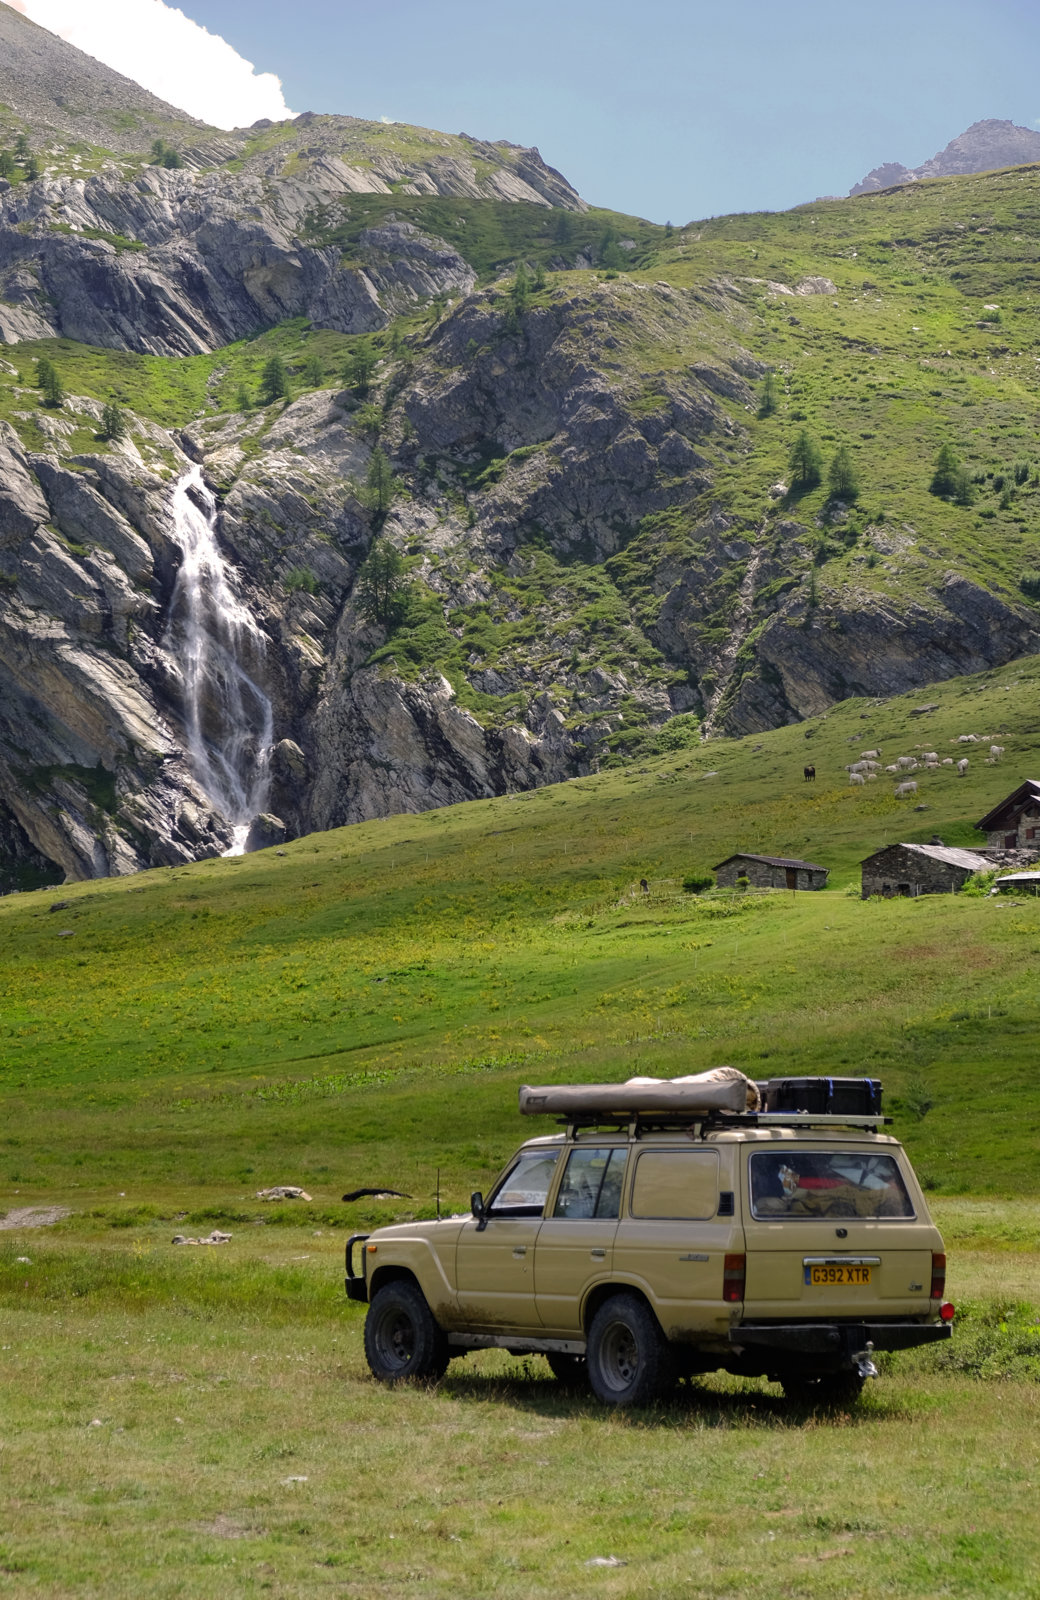 landcruiser in front of waterfall.jpg